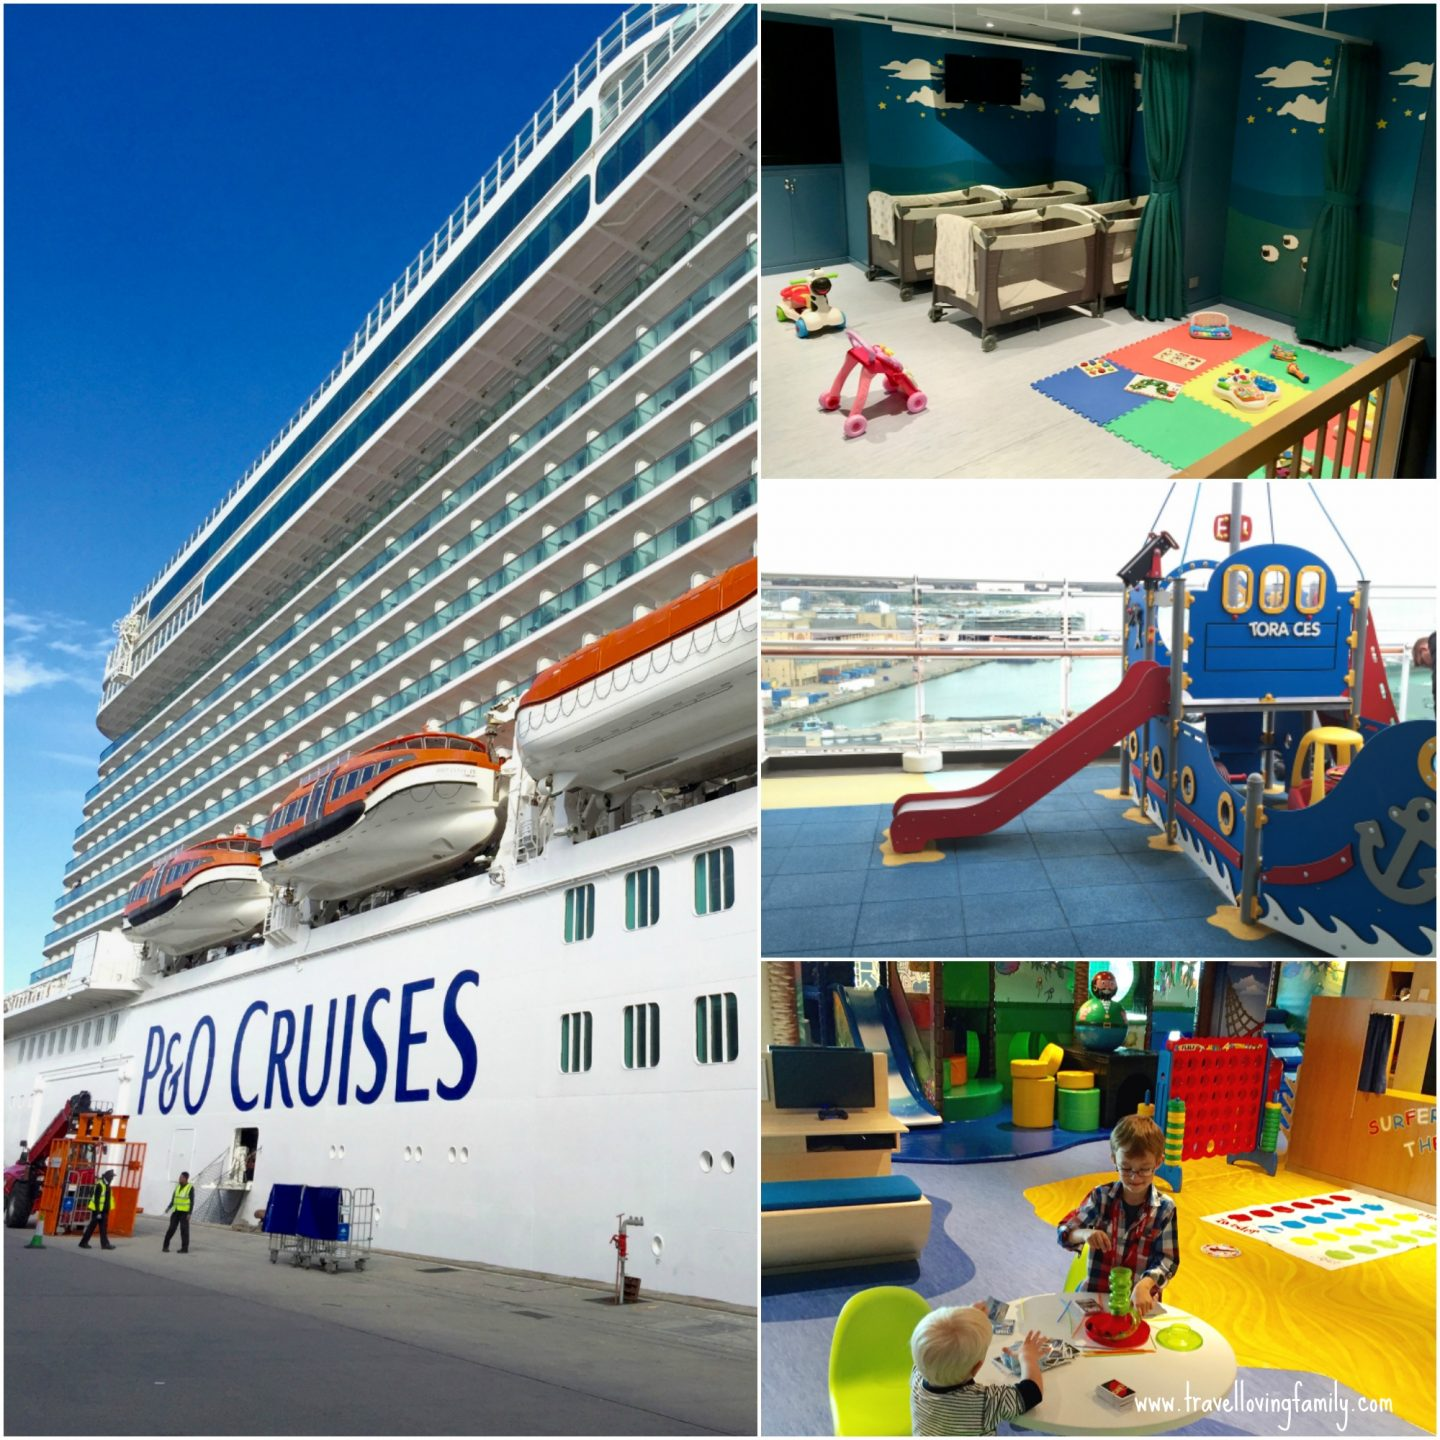 Tips for cruising with kids - onboard P&O Cruises Britannia